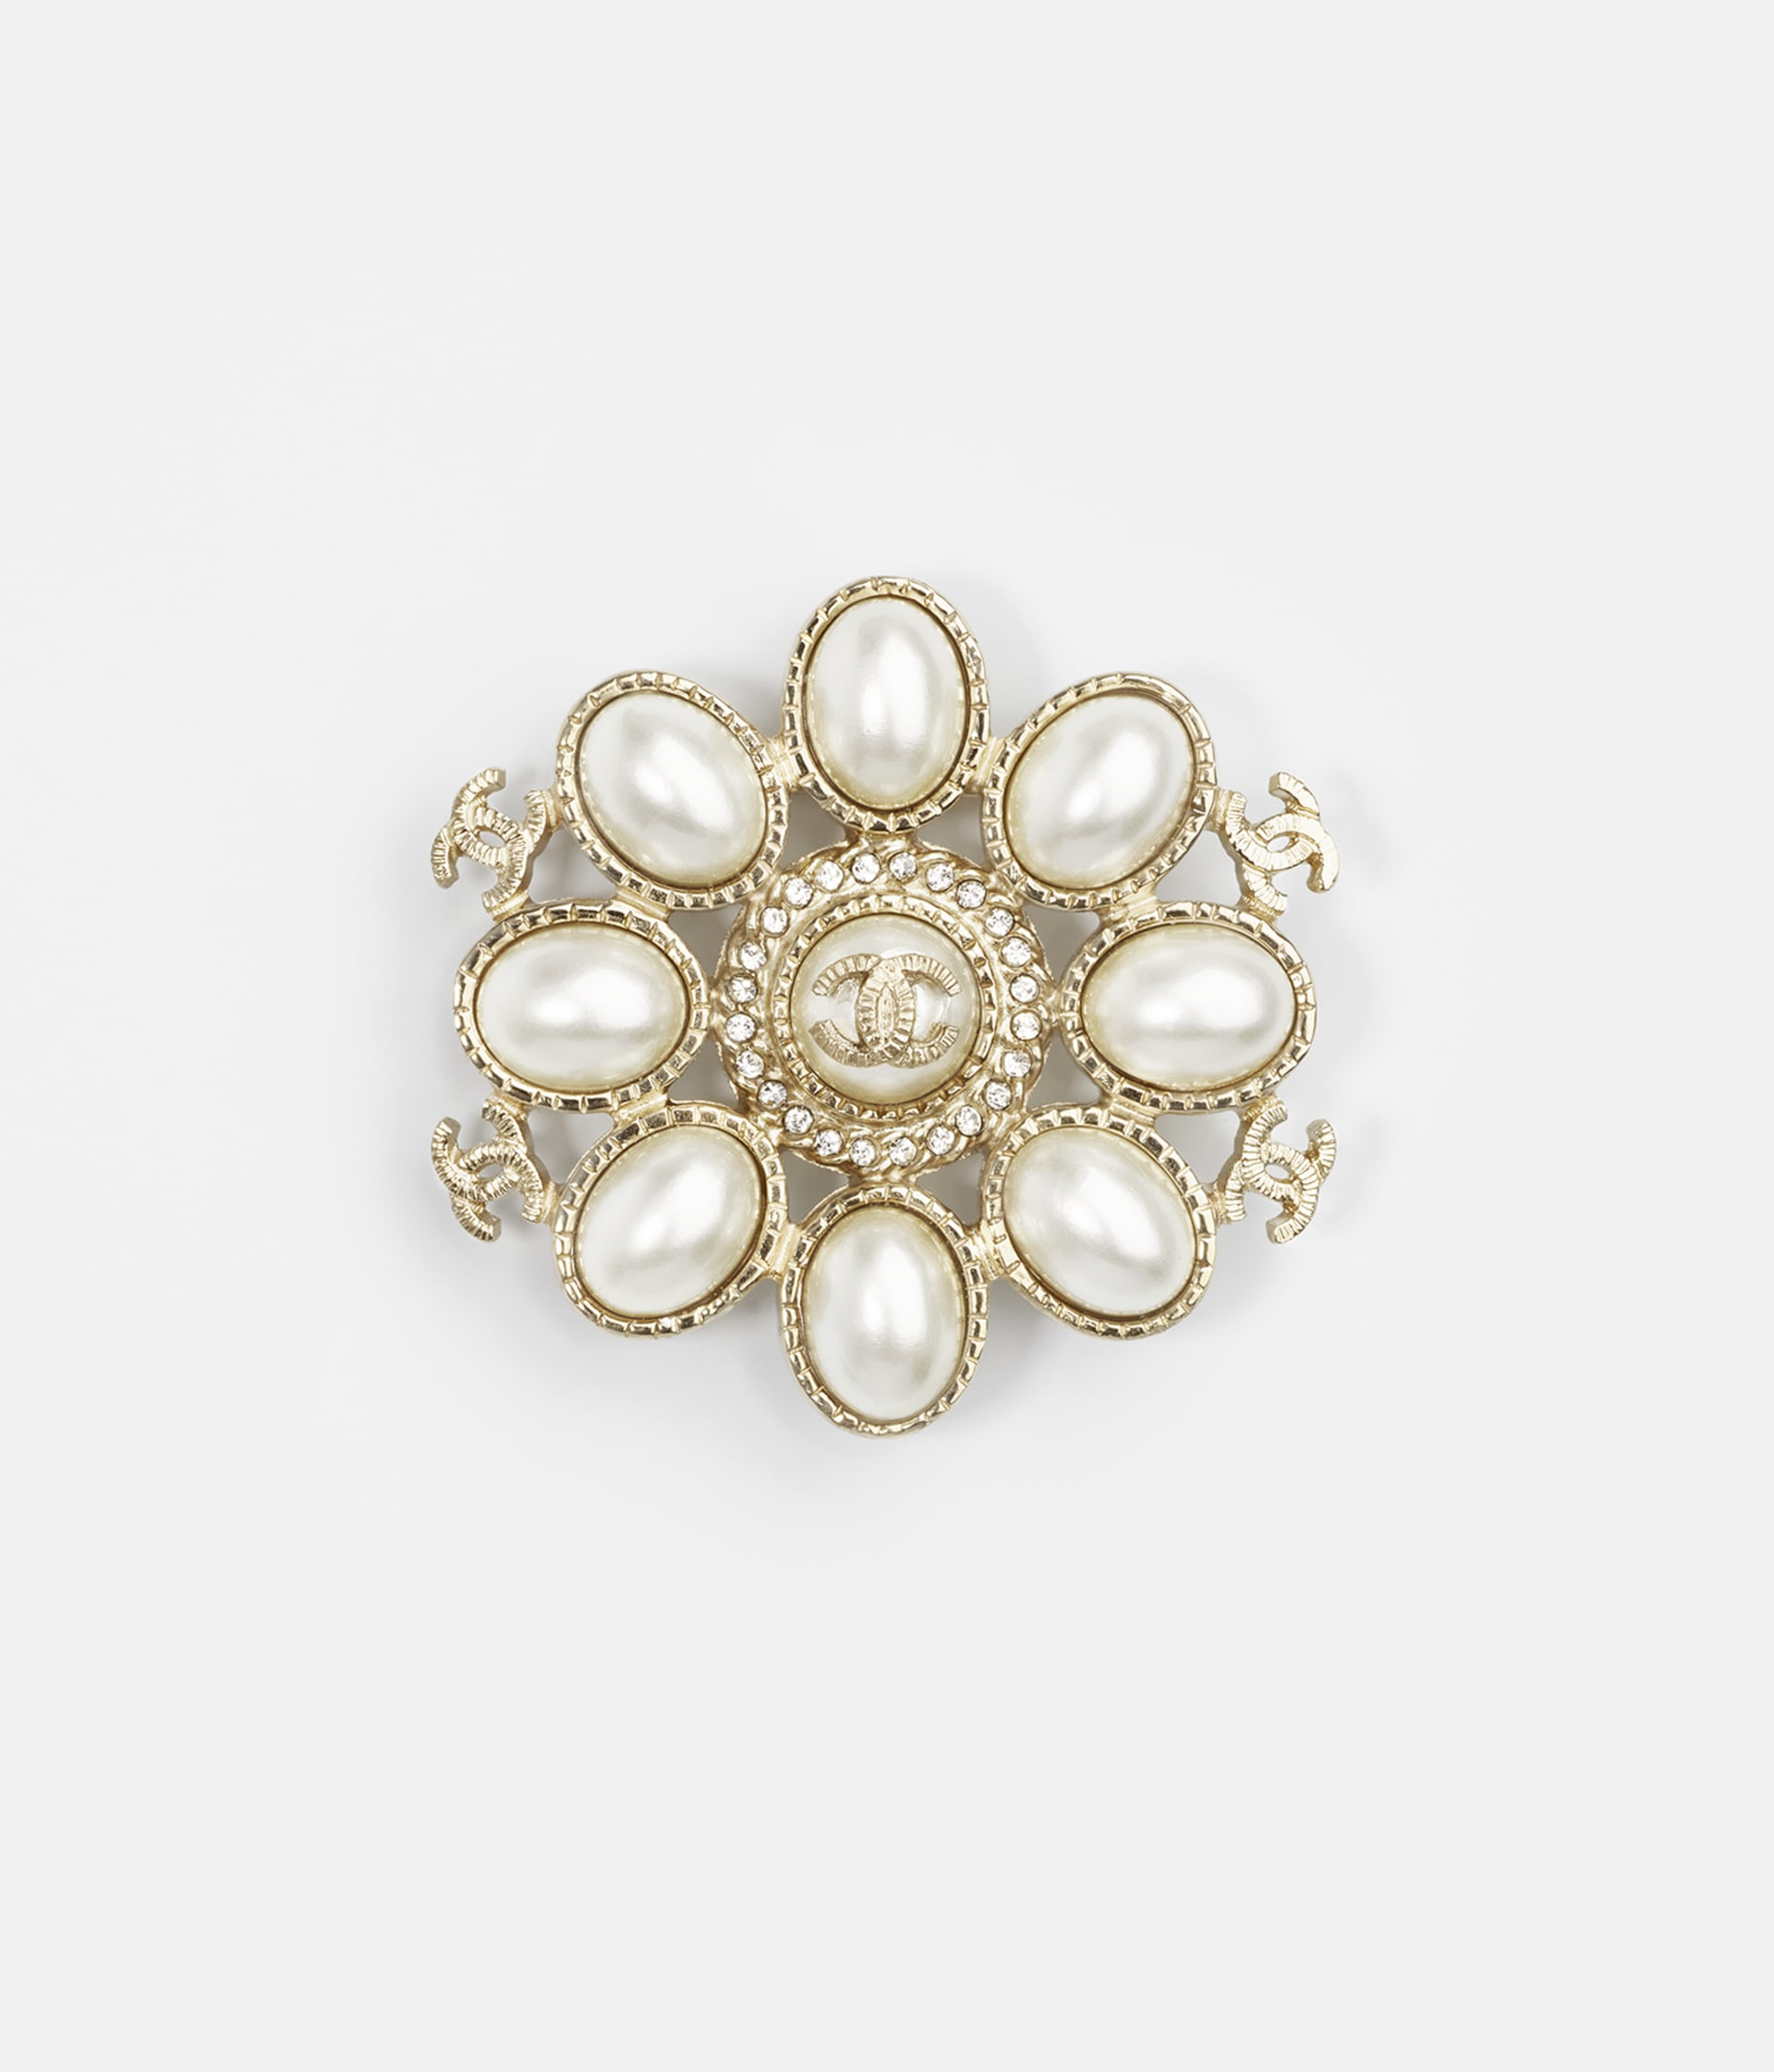 image 1 - Brooch - Metal, Resin & Strass - Gold, Pearly White & Crystal